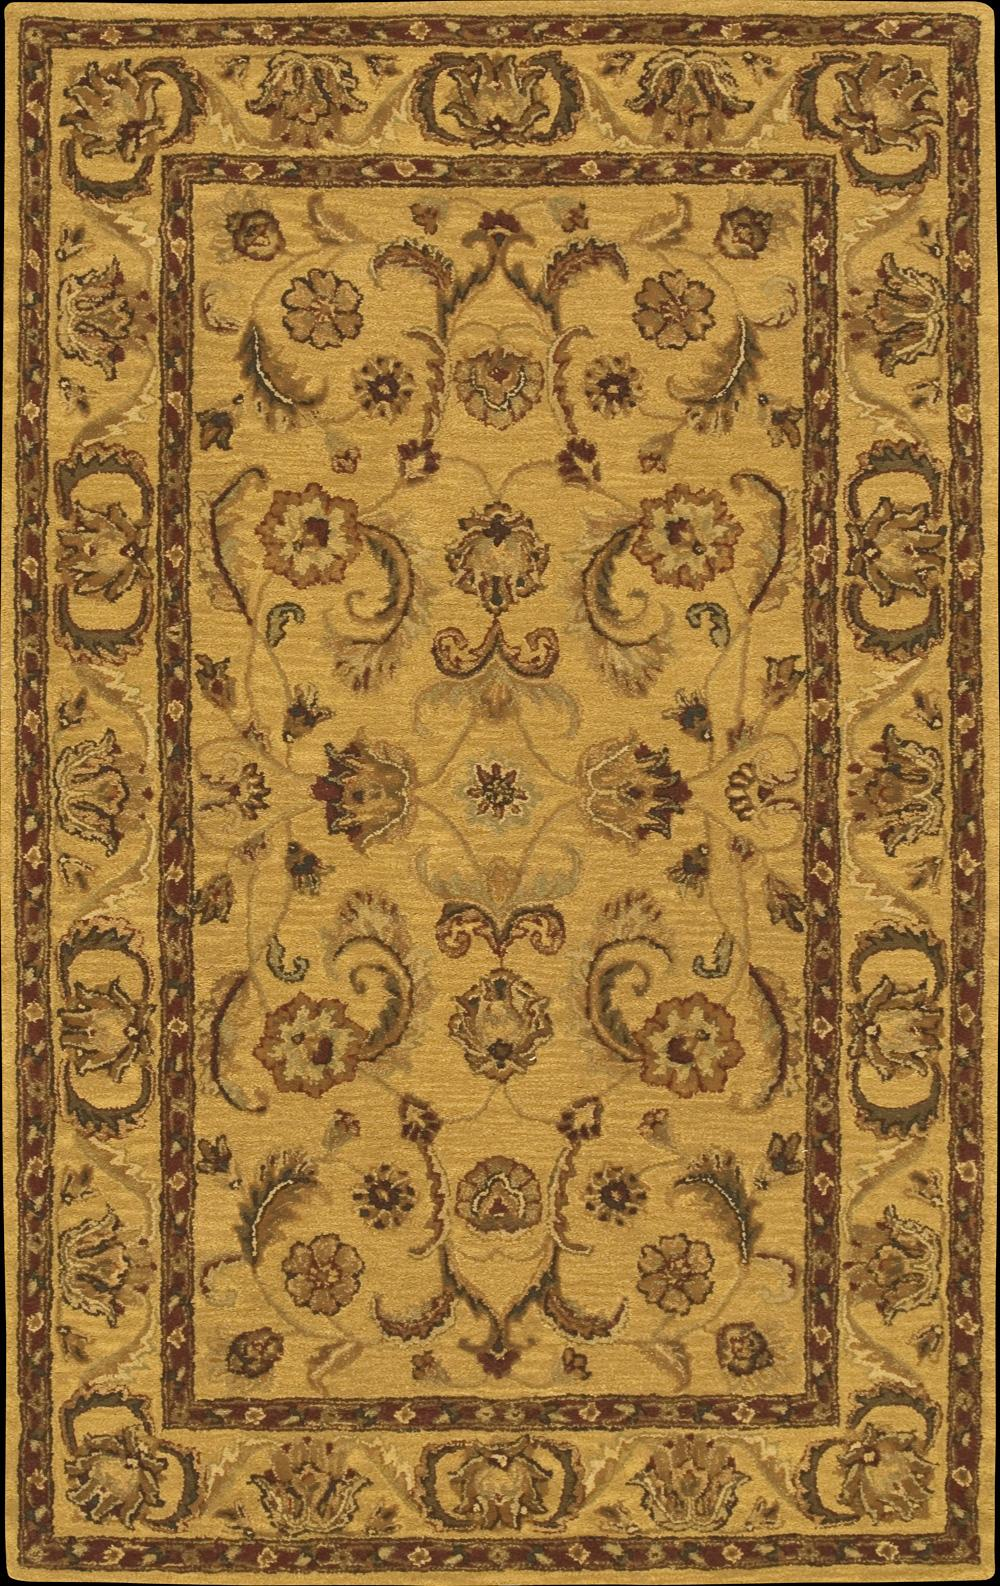 Nourison India House Area Rug 5' x 8' - Item Number: 68055